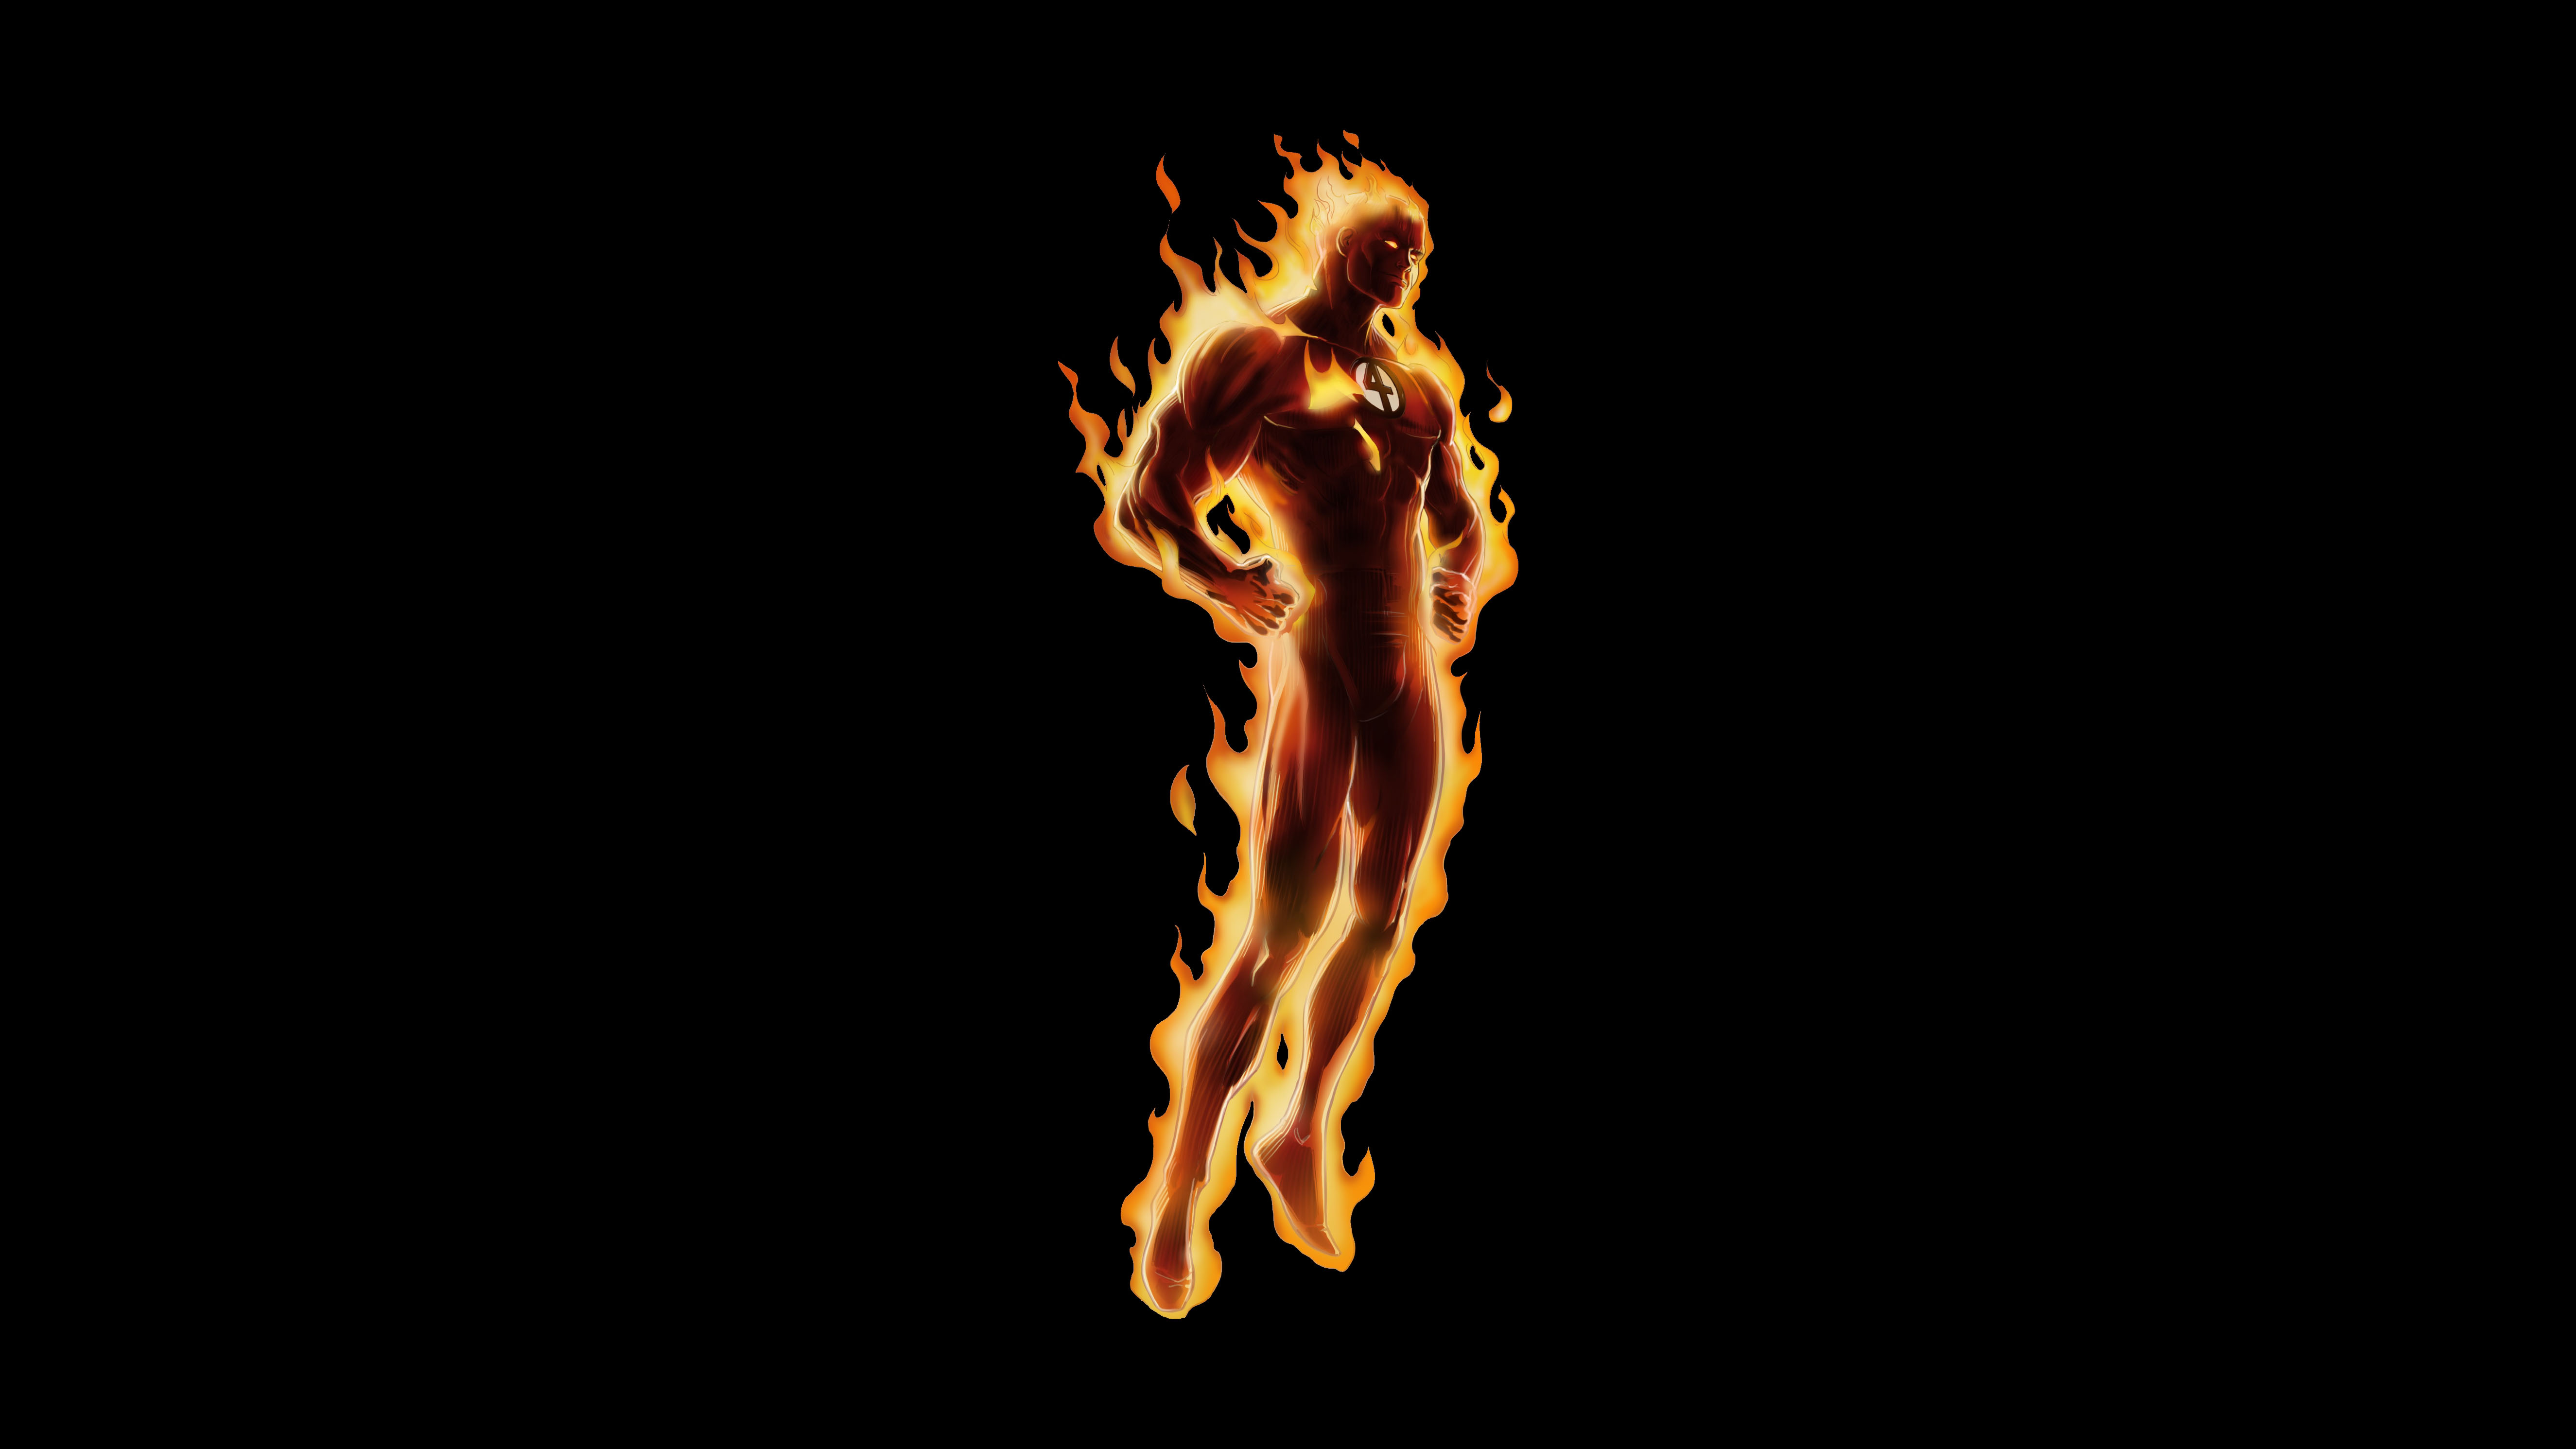 Human Torch HD Wallpapers Backgrounds 5300x2981